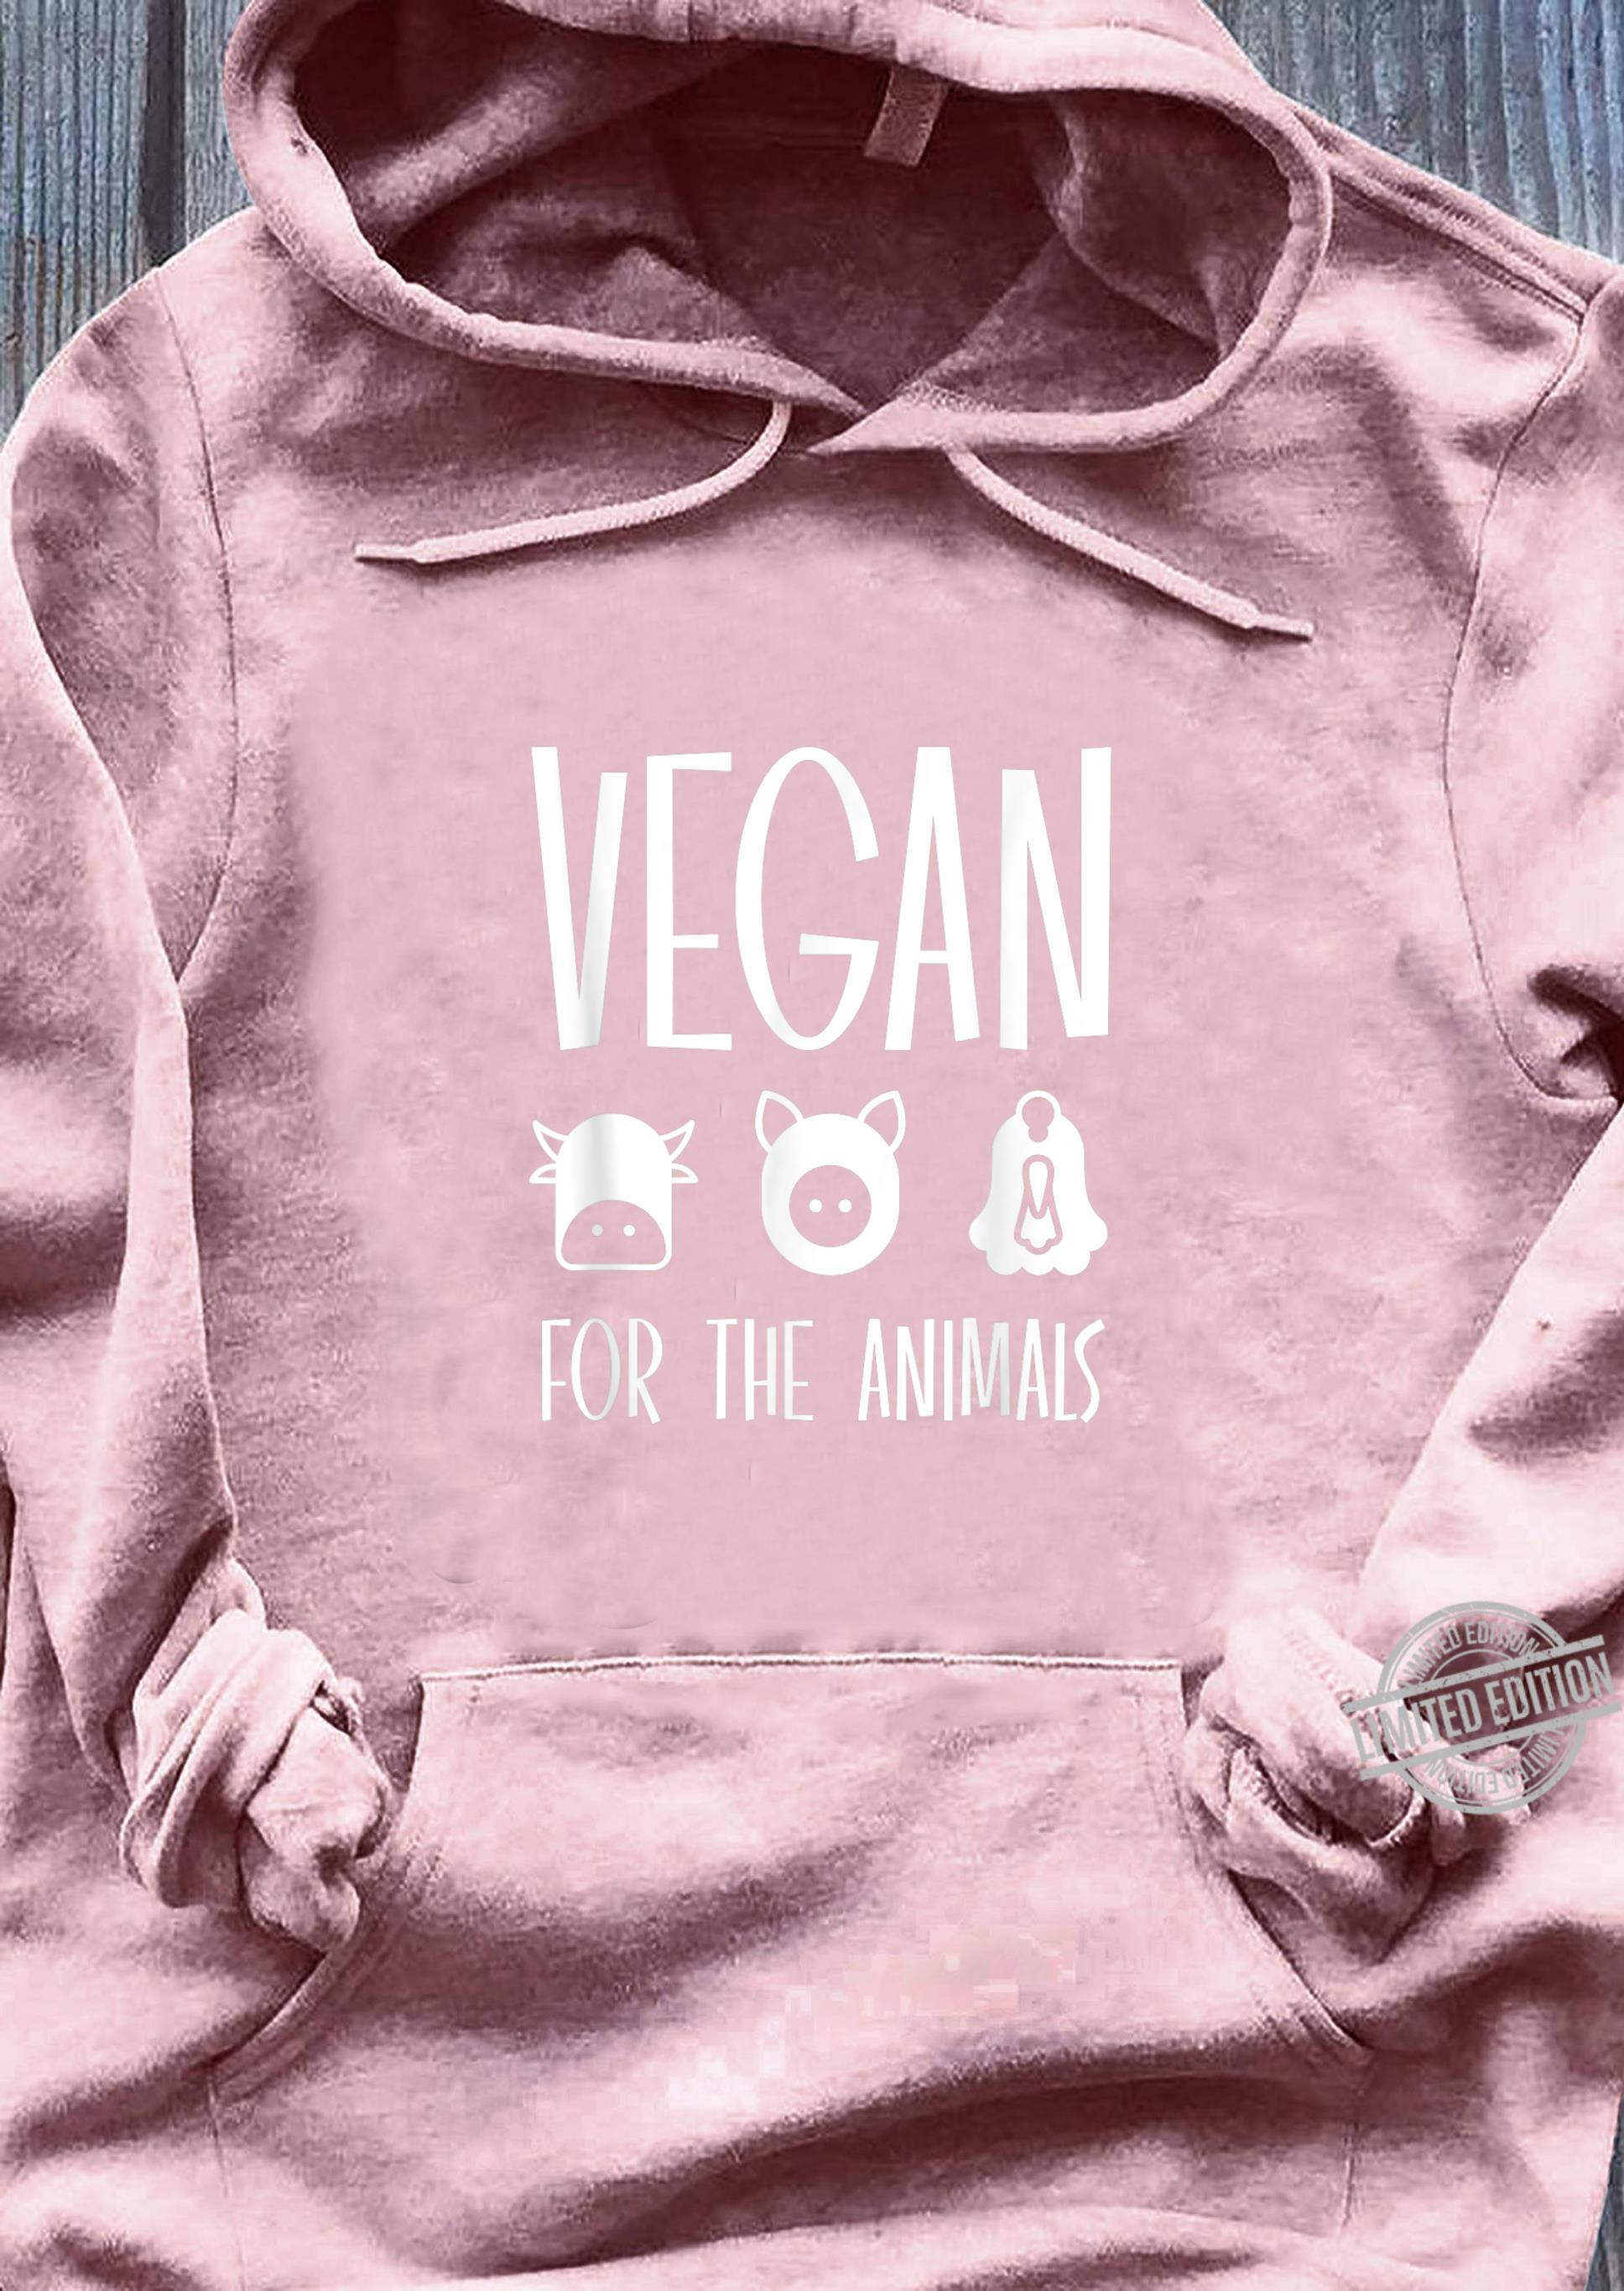 VEGAN FOR THE ANIMALS Shirt sweater